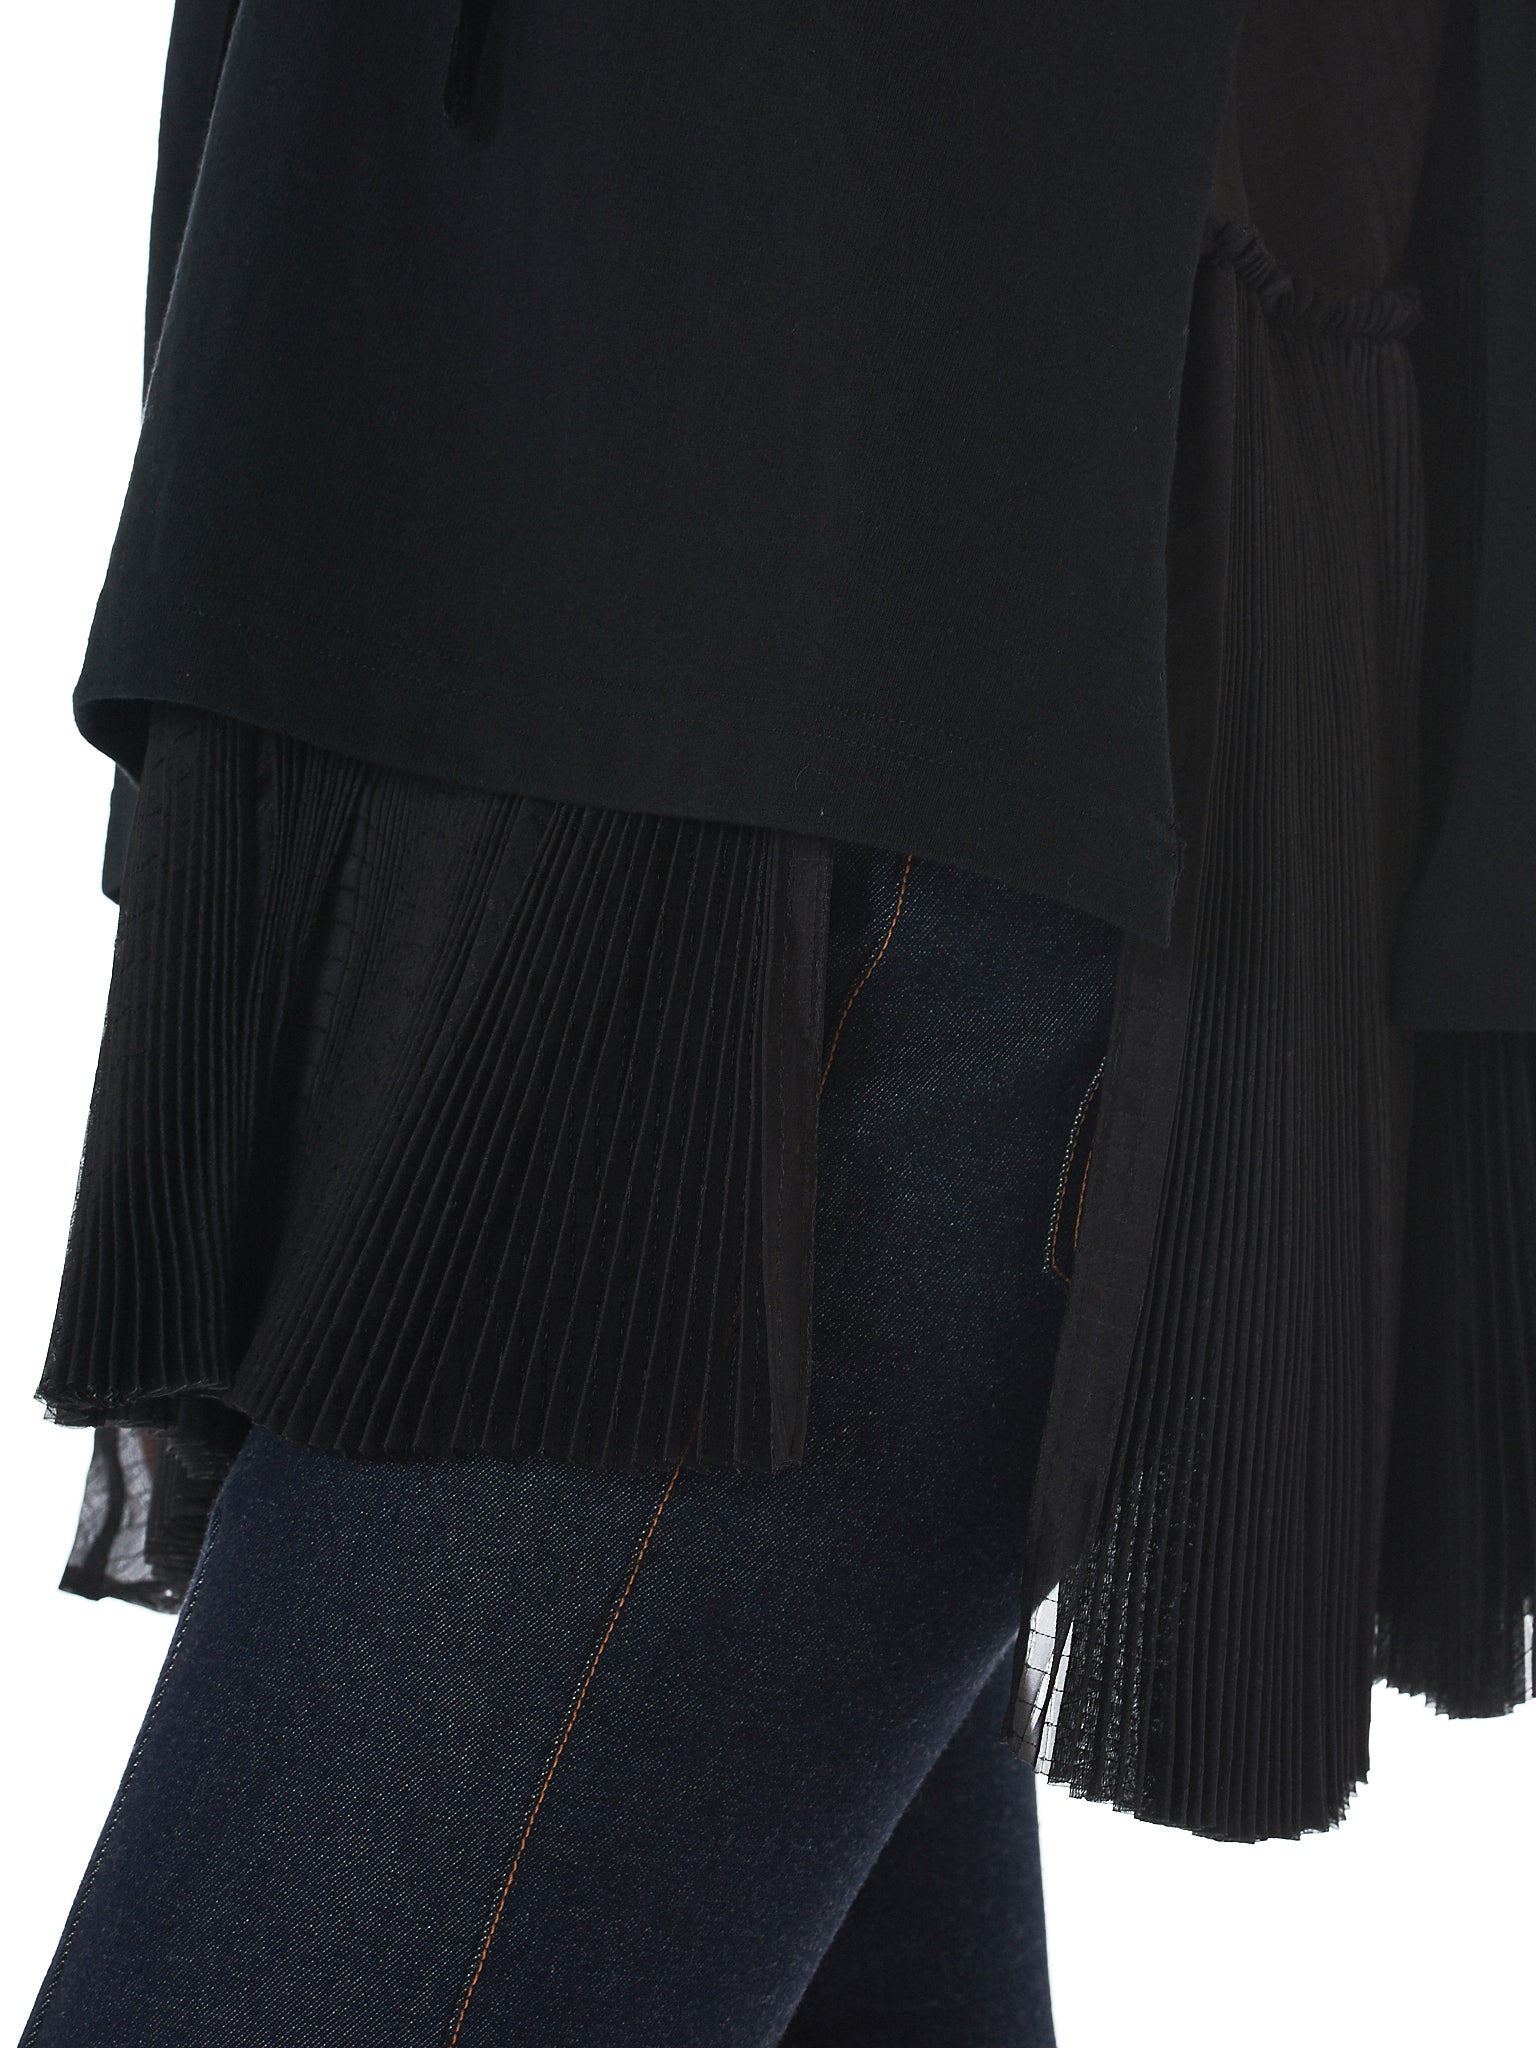 Sacai Top - Hlorenzo Detail 3